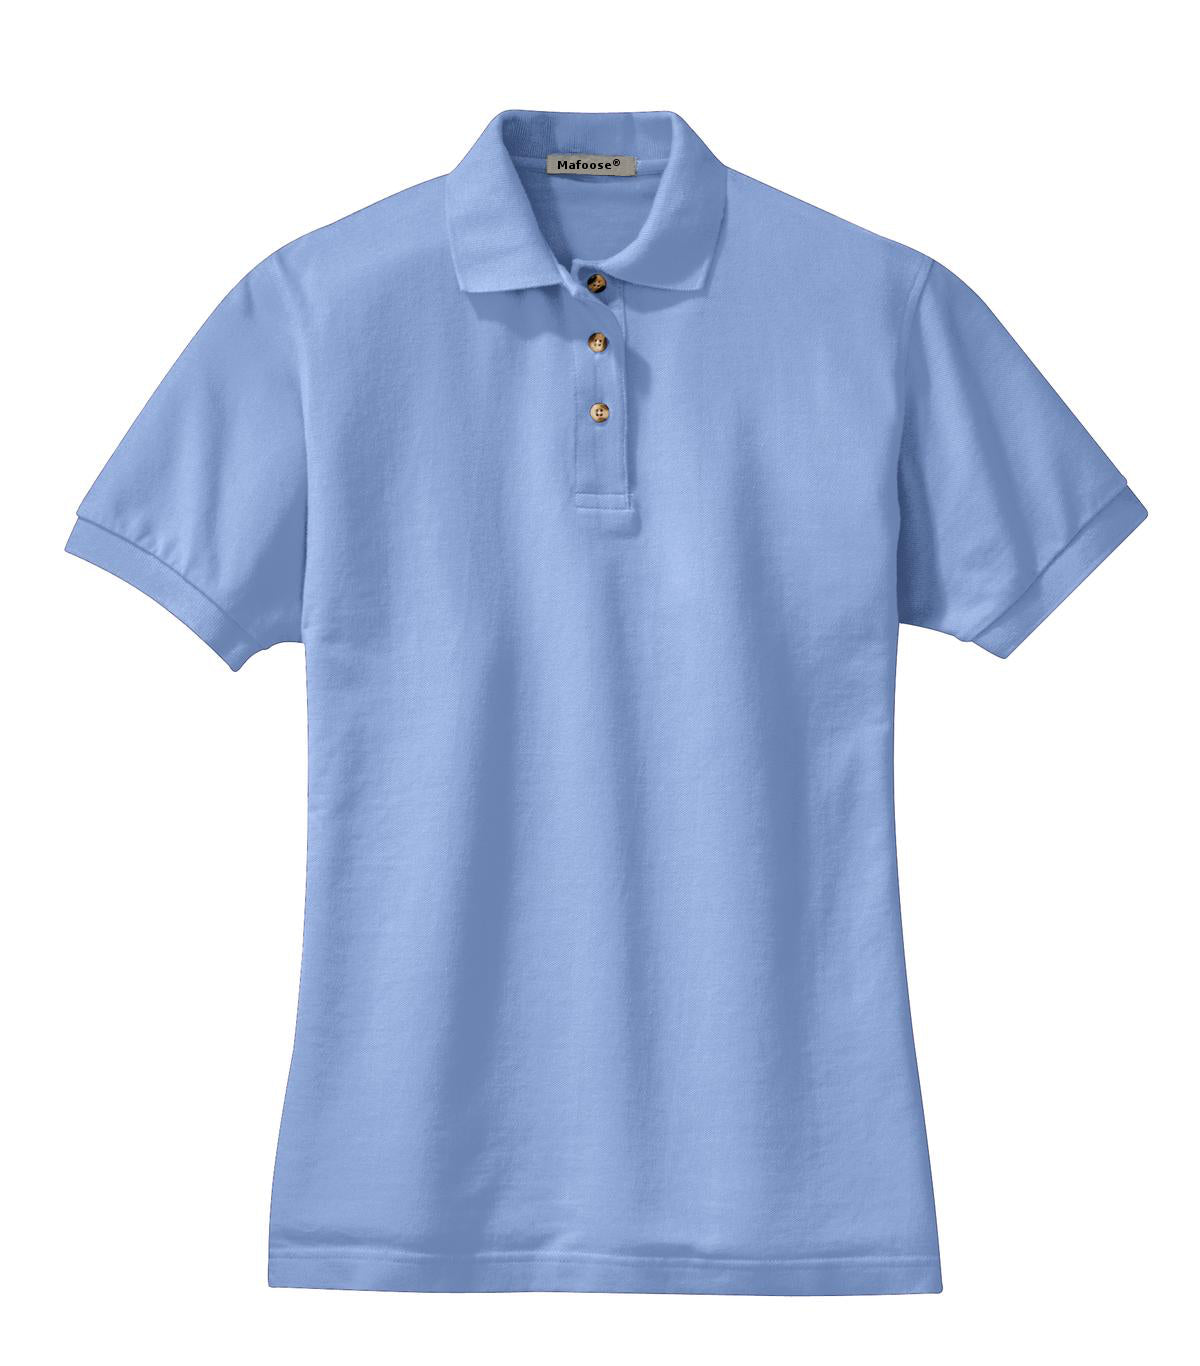 Mafoose Women's Heavyweight Cotton Pique Polo Shirt Light Blue-Front